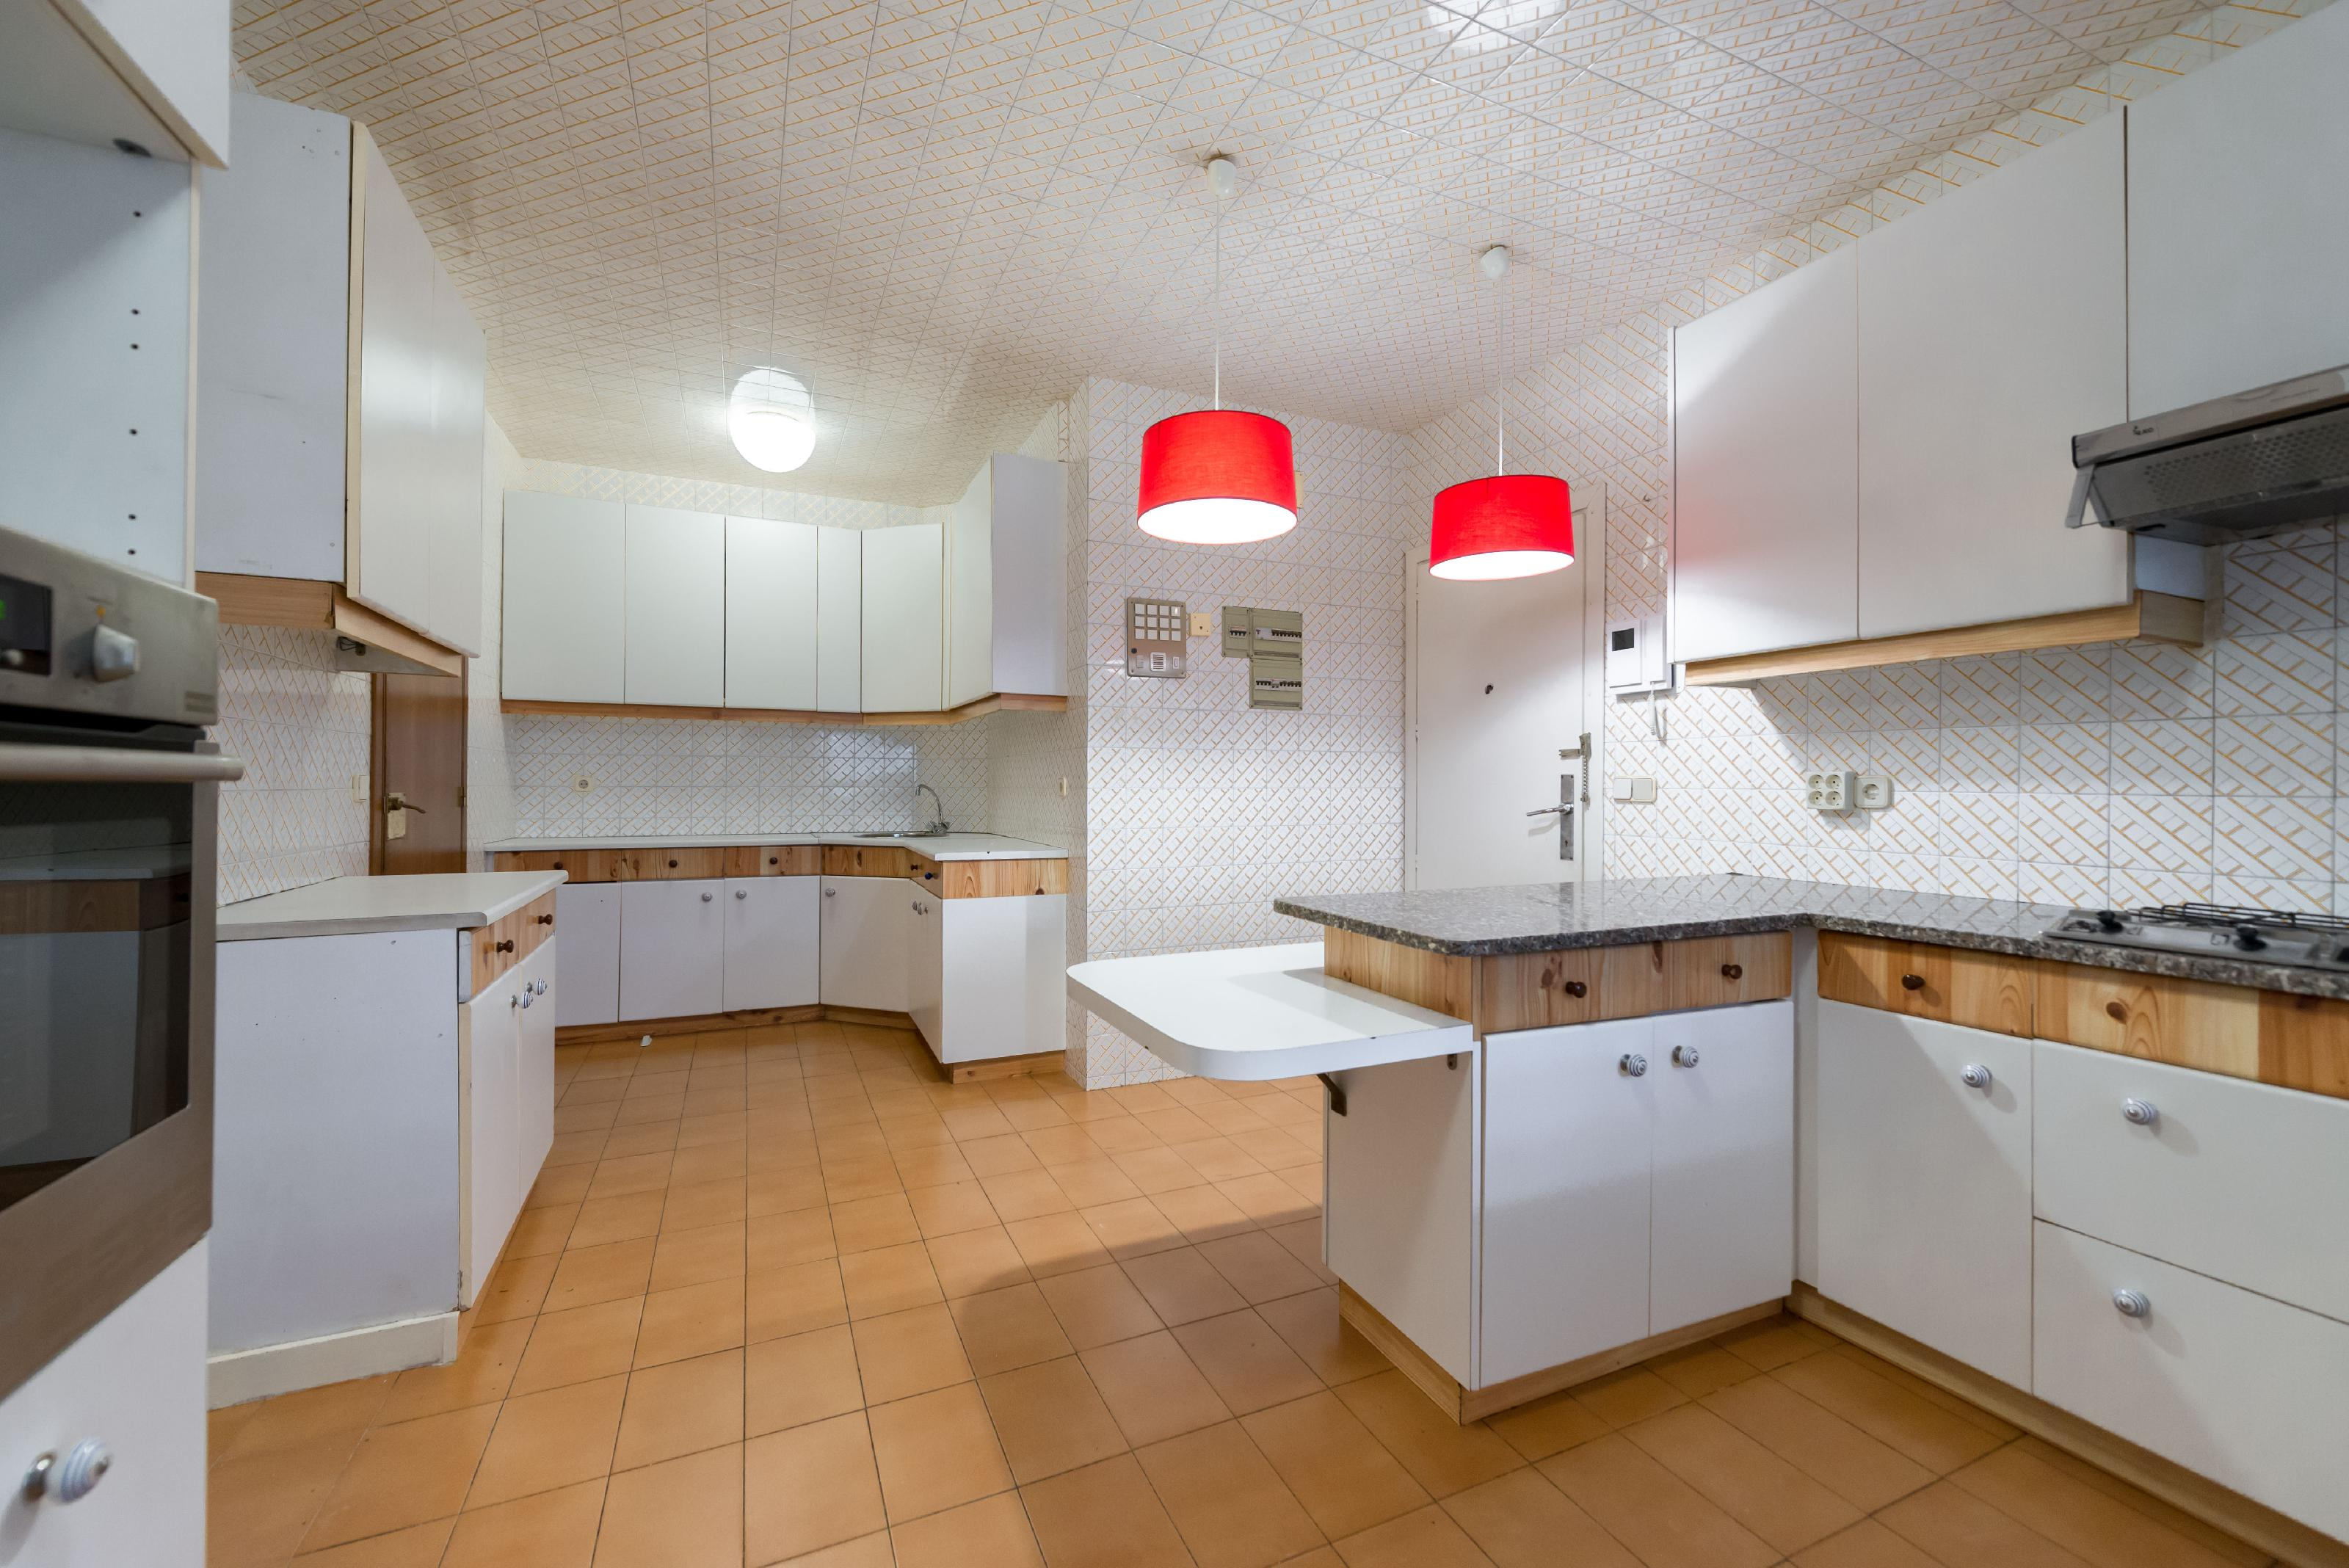 245495 Penthouse for sale in Les Corts, Pedralbes 10